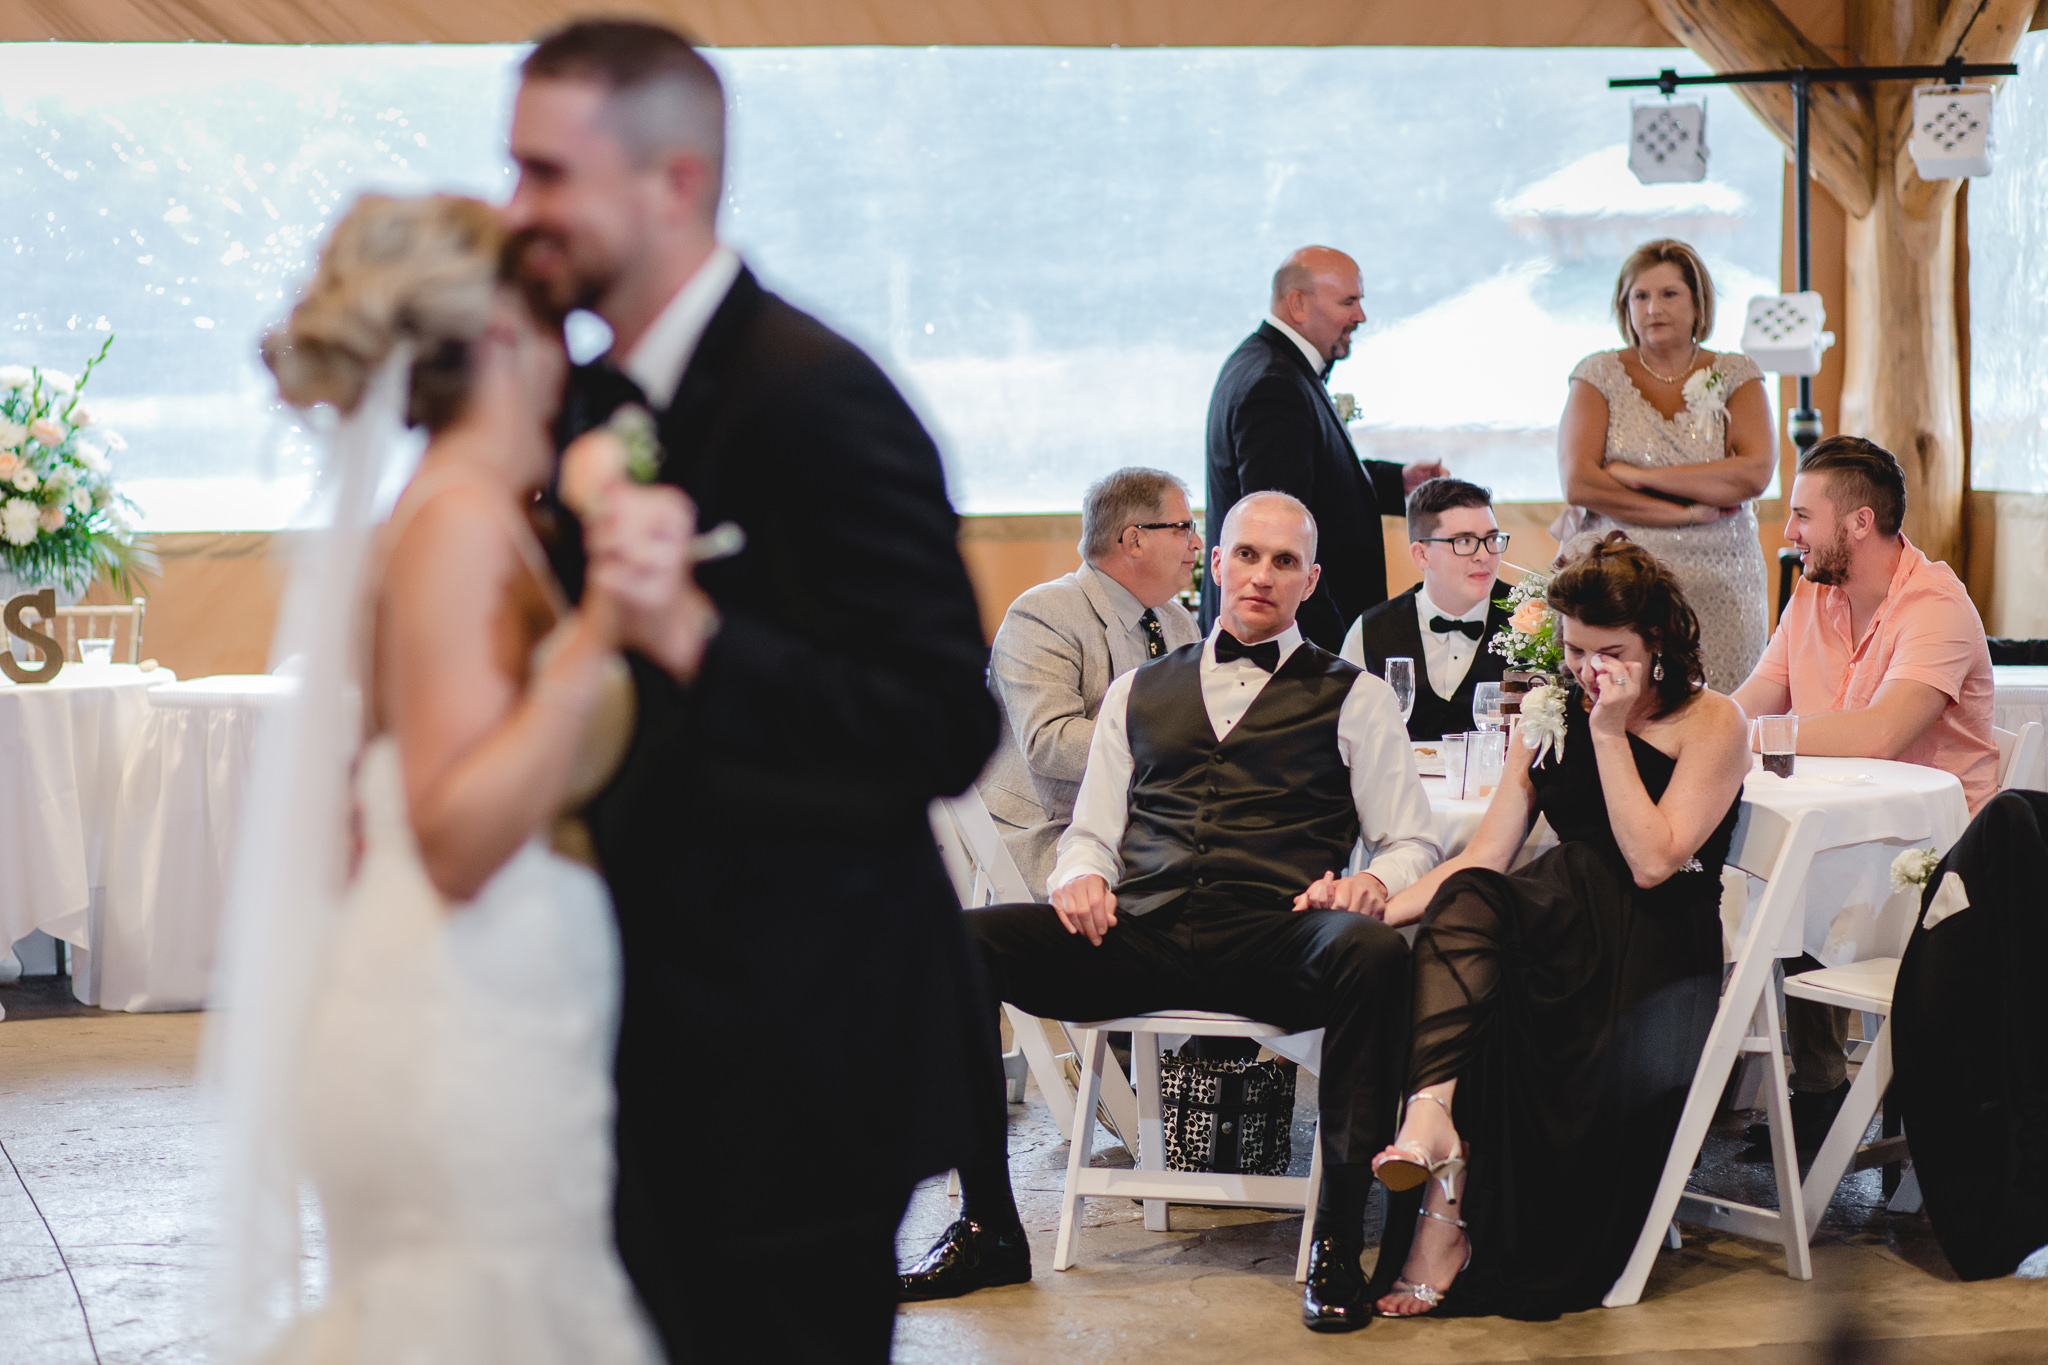 Mother of the groom cries during newlyweds' first dance at the Gathering Place at Darlington Lake